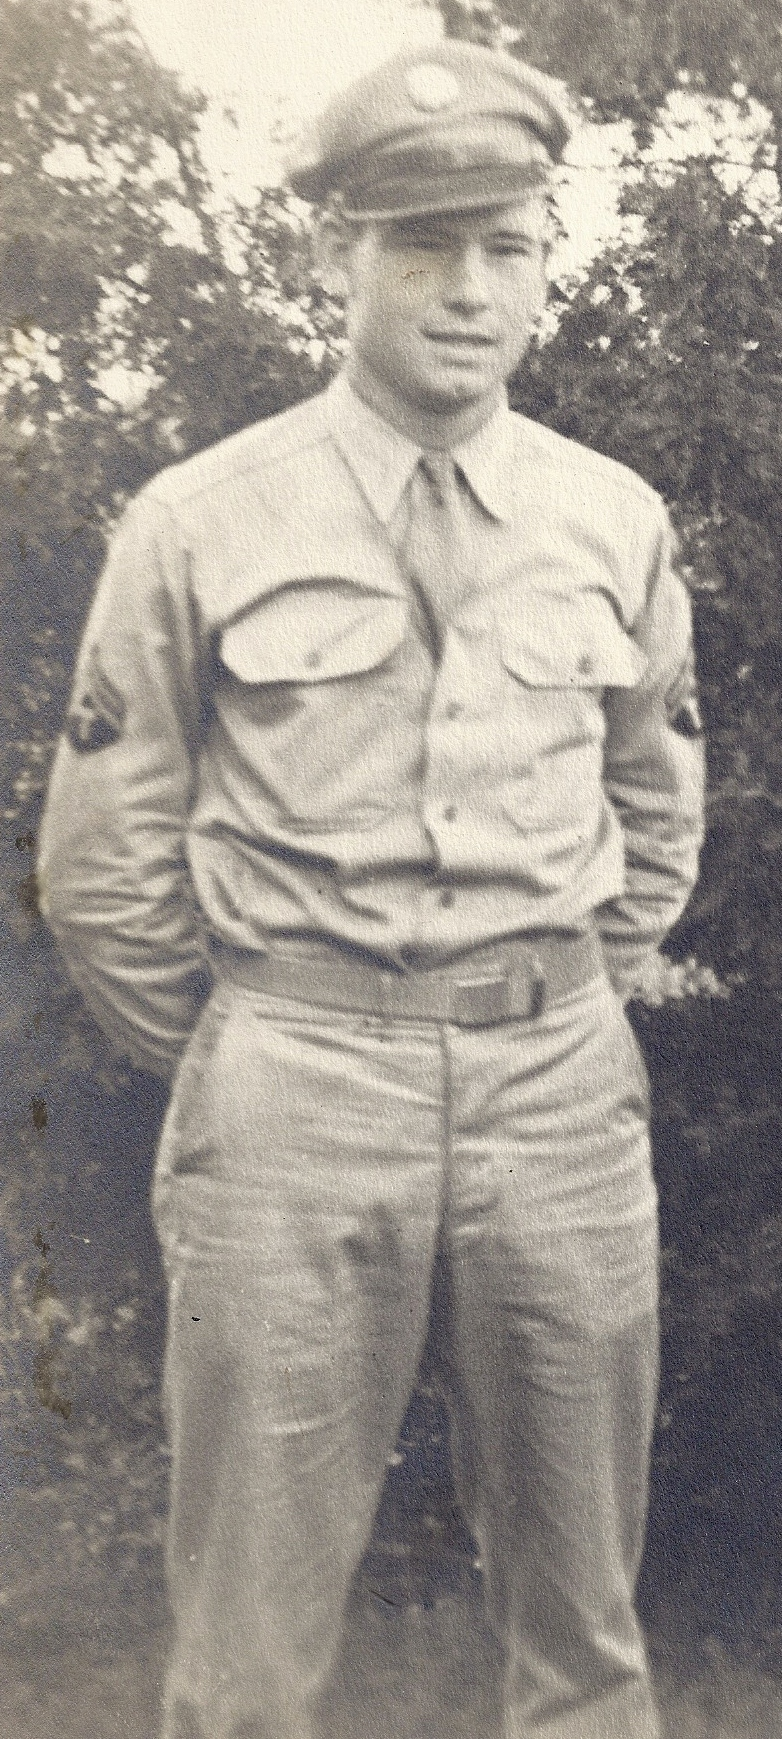 T/5 Robert Kreis (BOB) - In what ways has TogetherWeServed.com helped you remember your military service and the friends you served with.